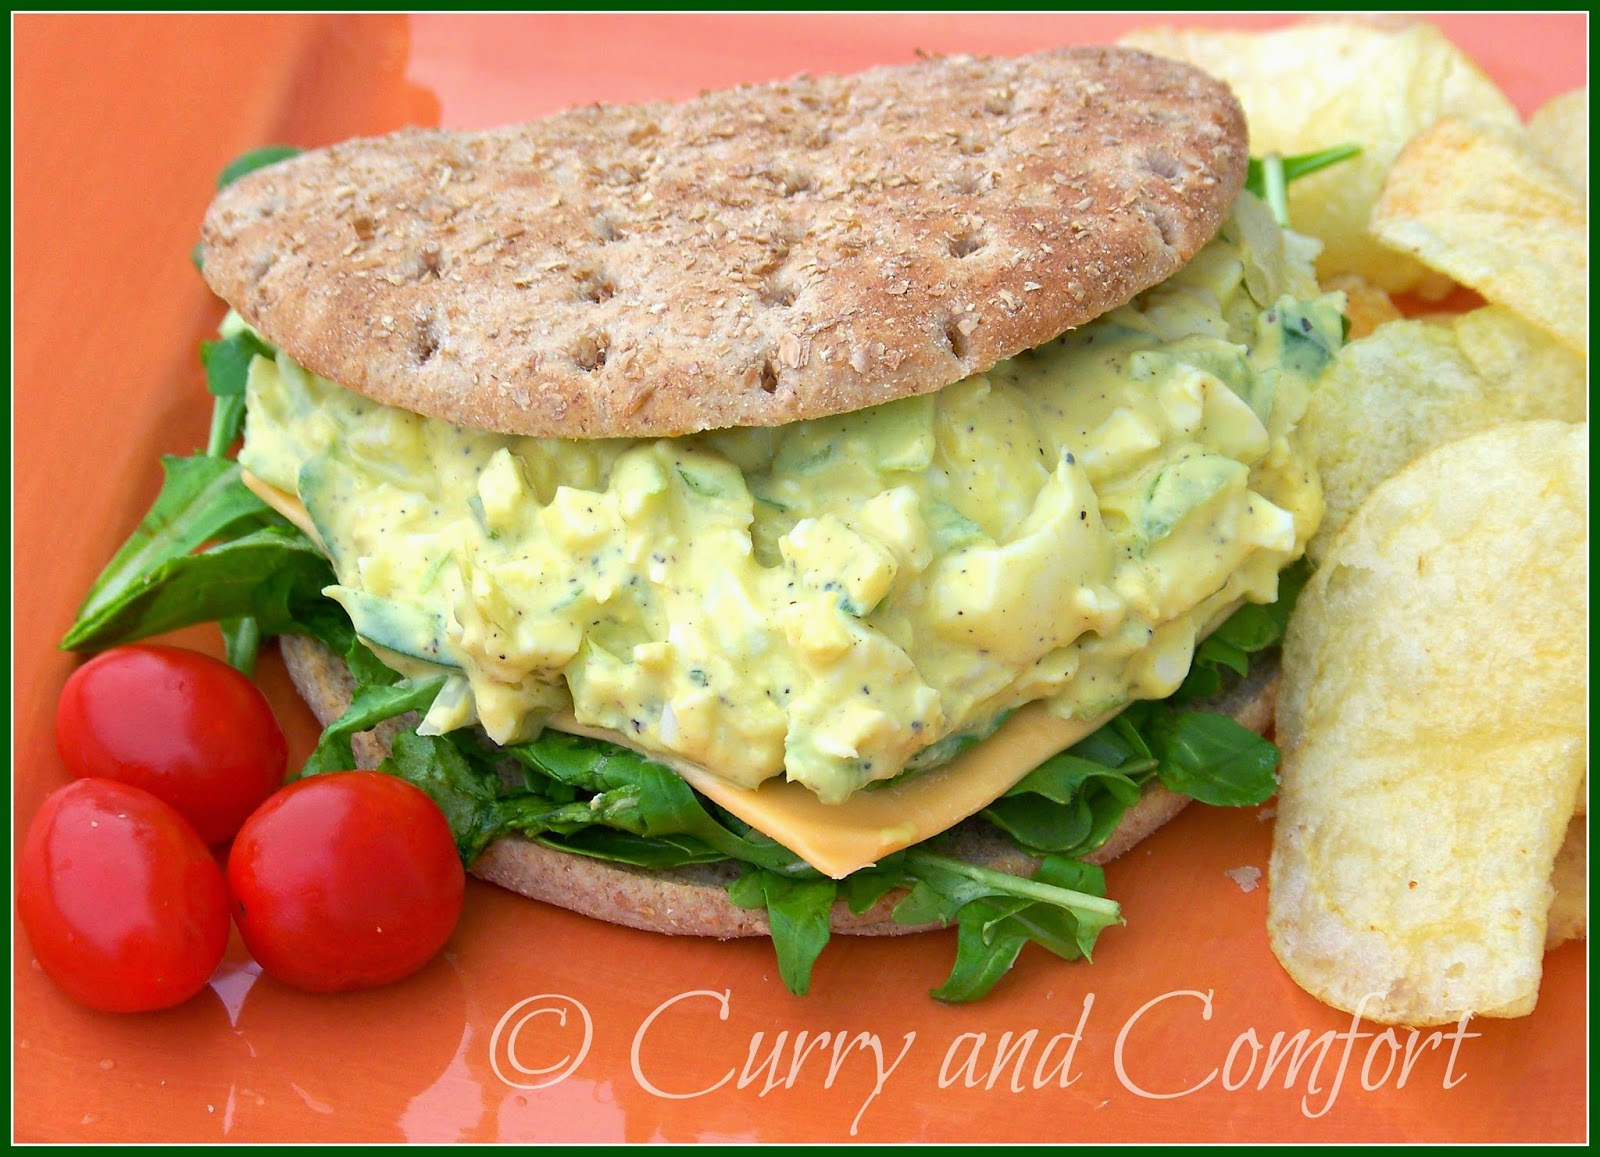 Kitchen simmer spicy egg salad did you know that april has a national egg salad week since eggs are a great focus during easter eggs salad is a perfect recipe to make with all those forumfinder Image collections